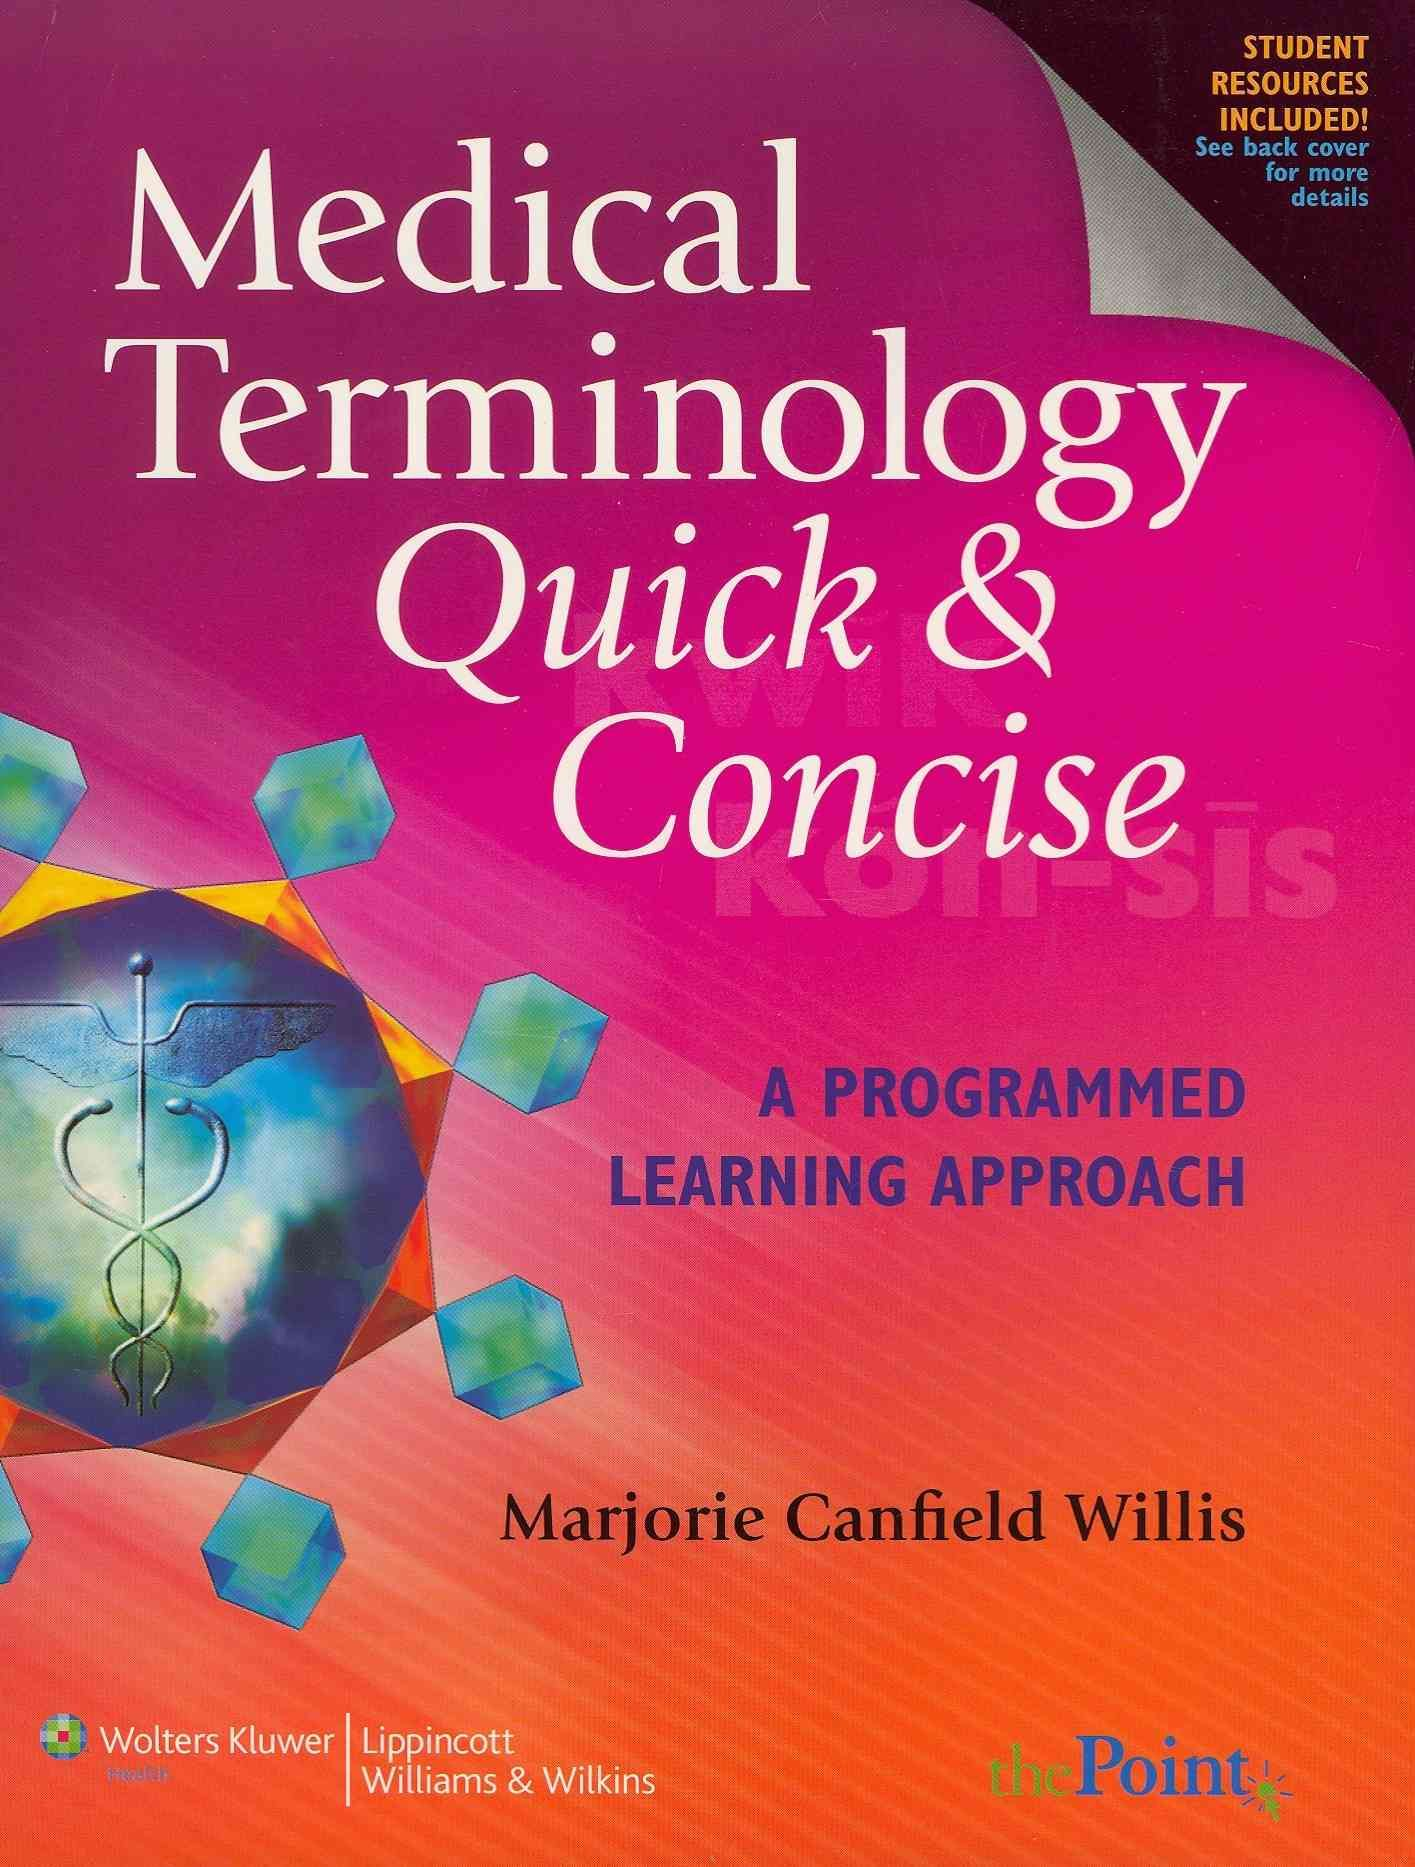 Medical Terminology Quick & Concise/ Stedman's Medical